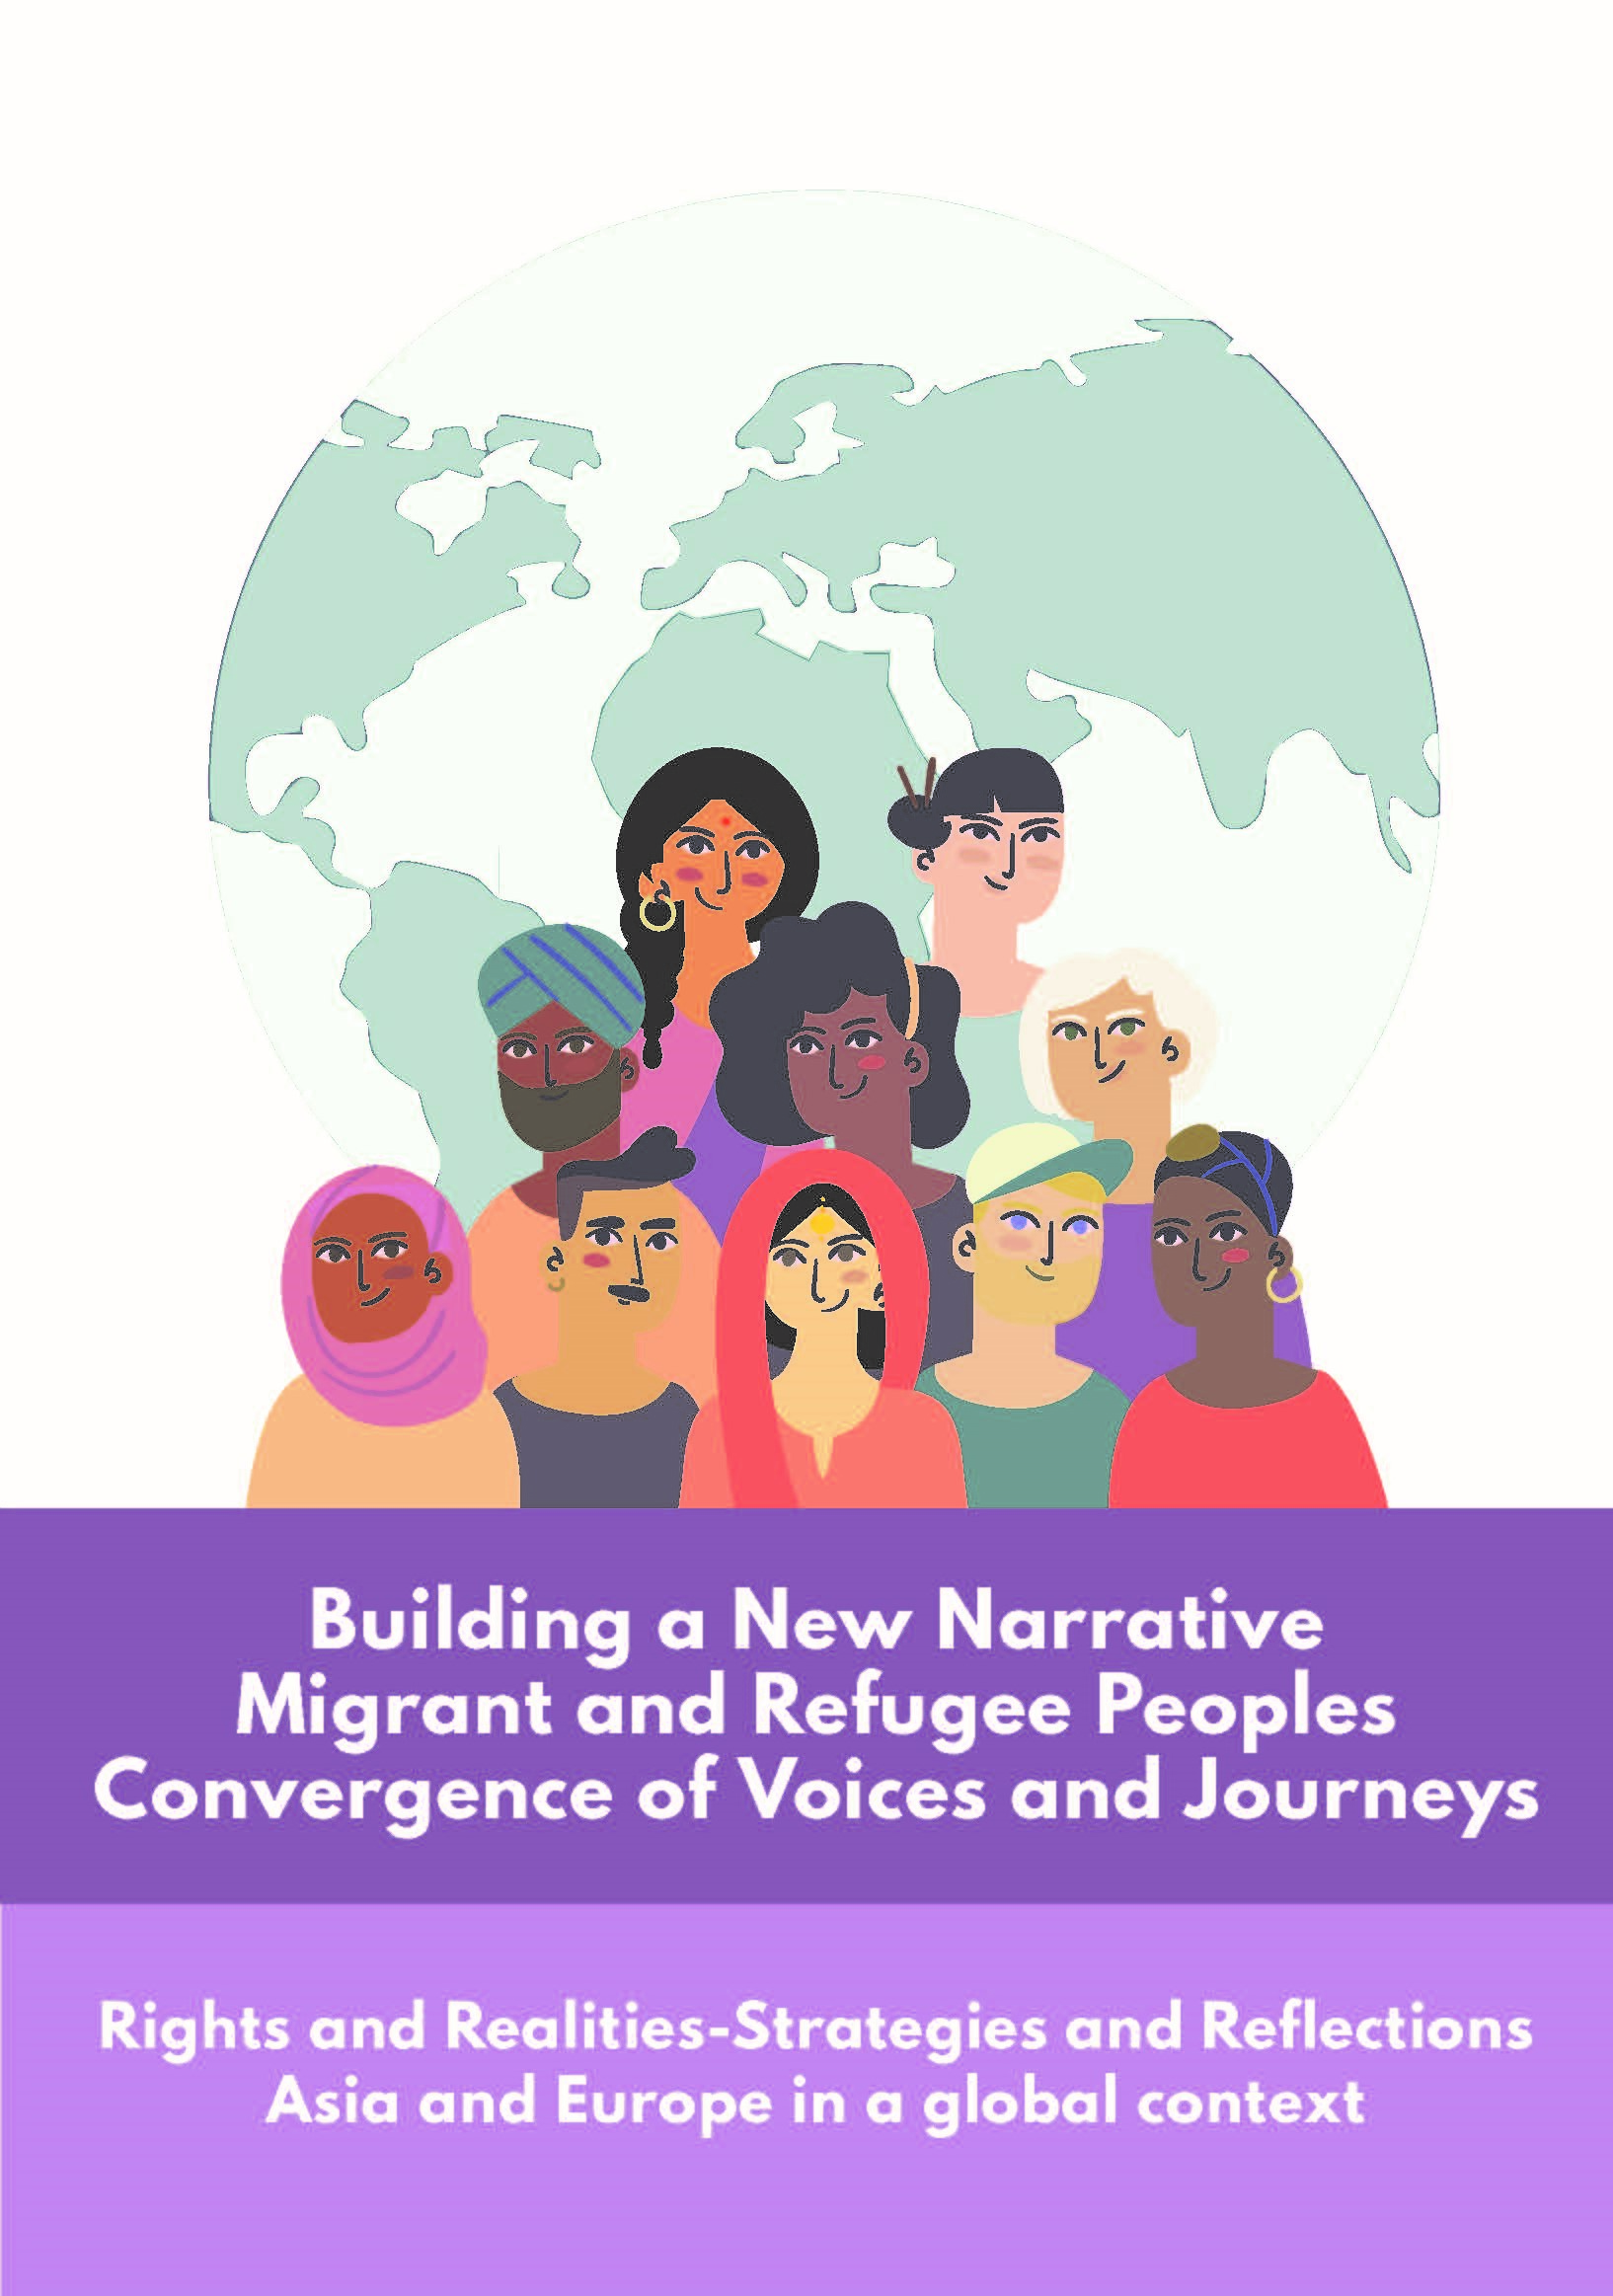 [PUBLICATION] Building a New Narrative, Migrant and Refugee Peoples: Convergence of Voices and Journeys